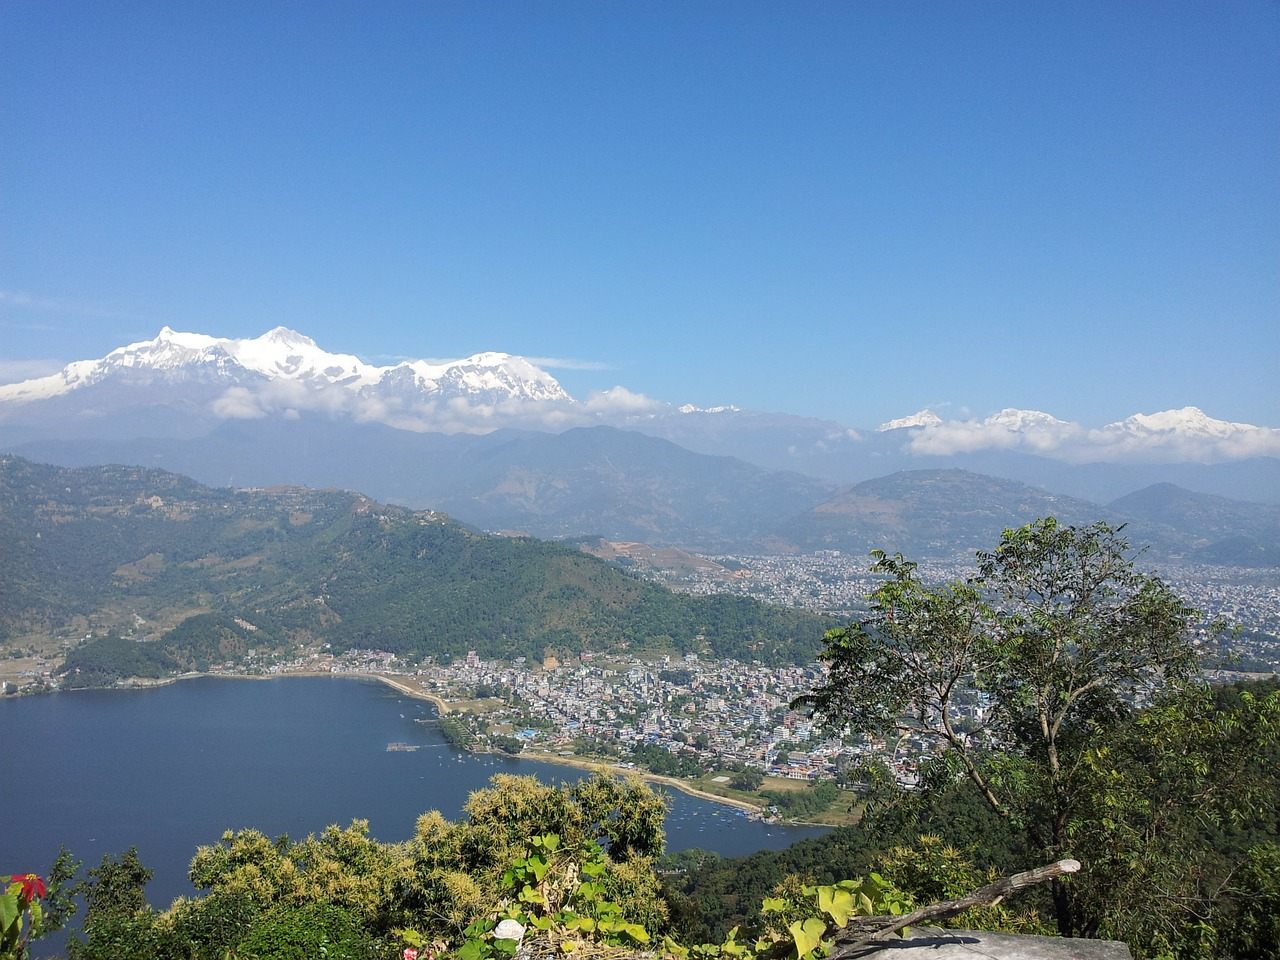 5 things to do in Pokhara, Nepal